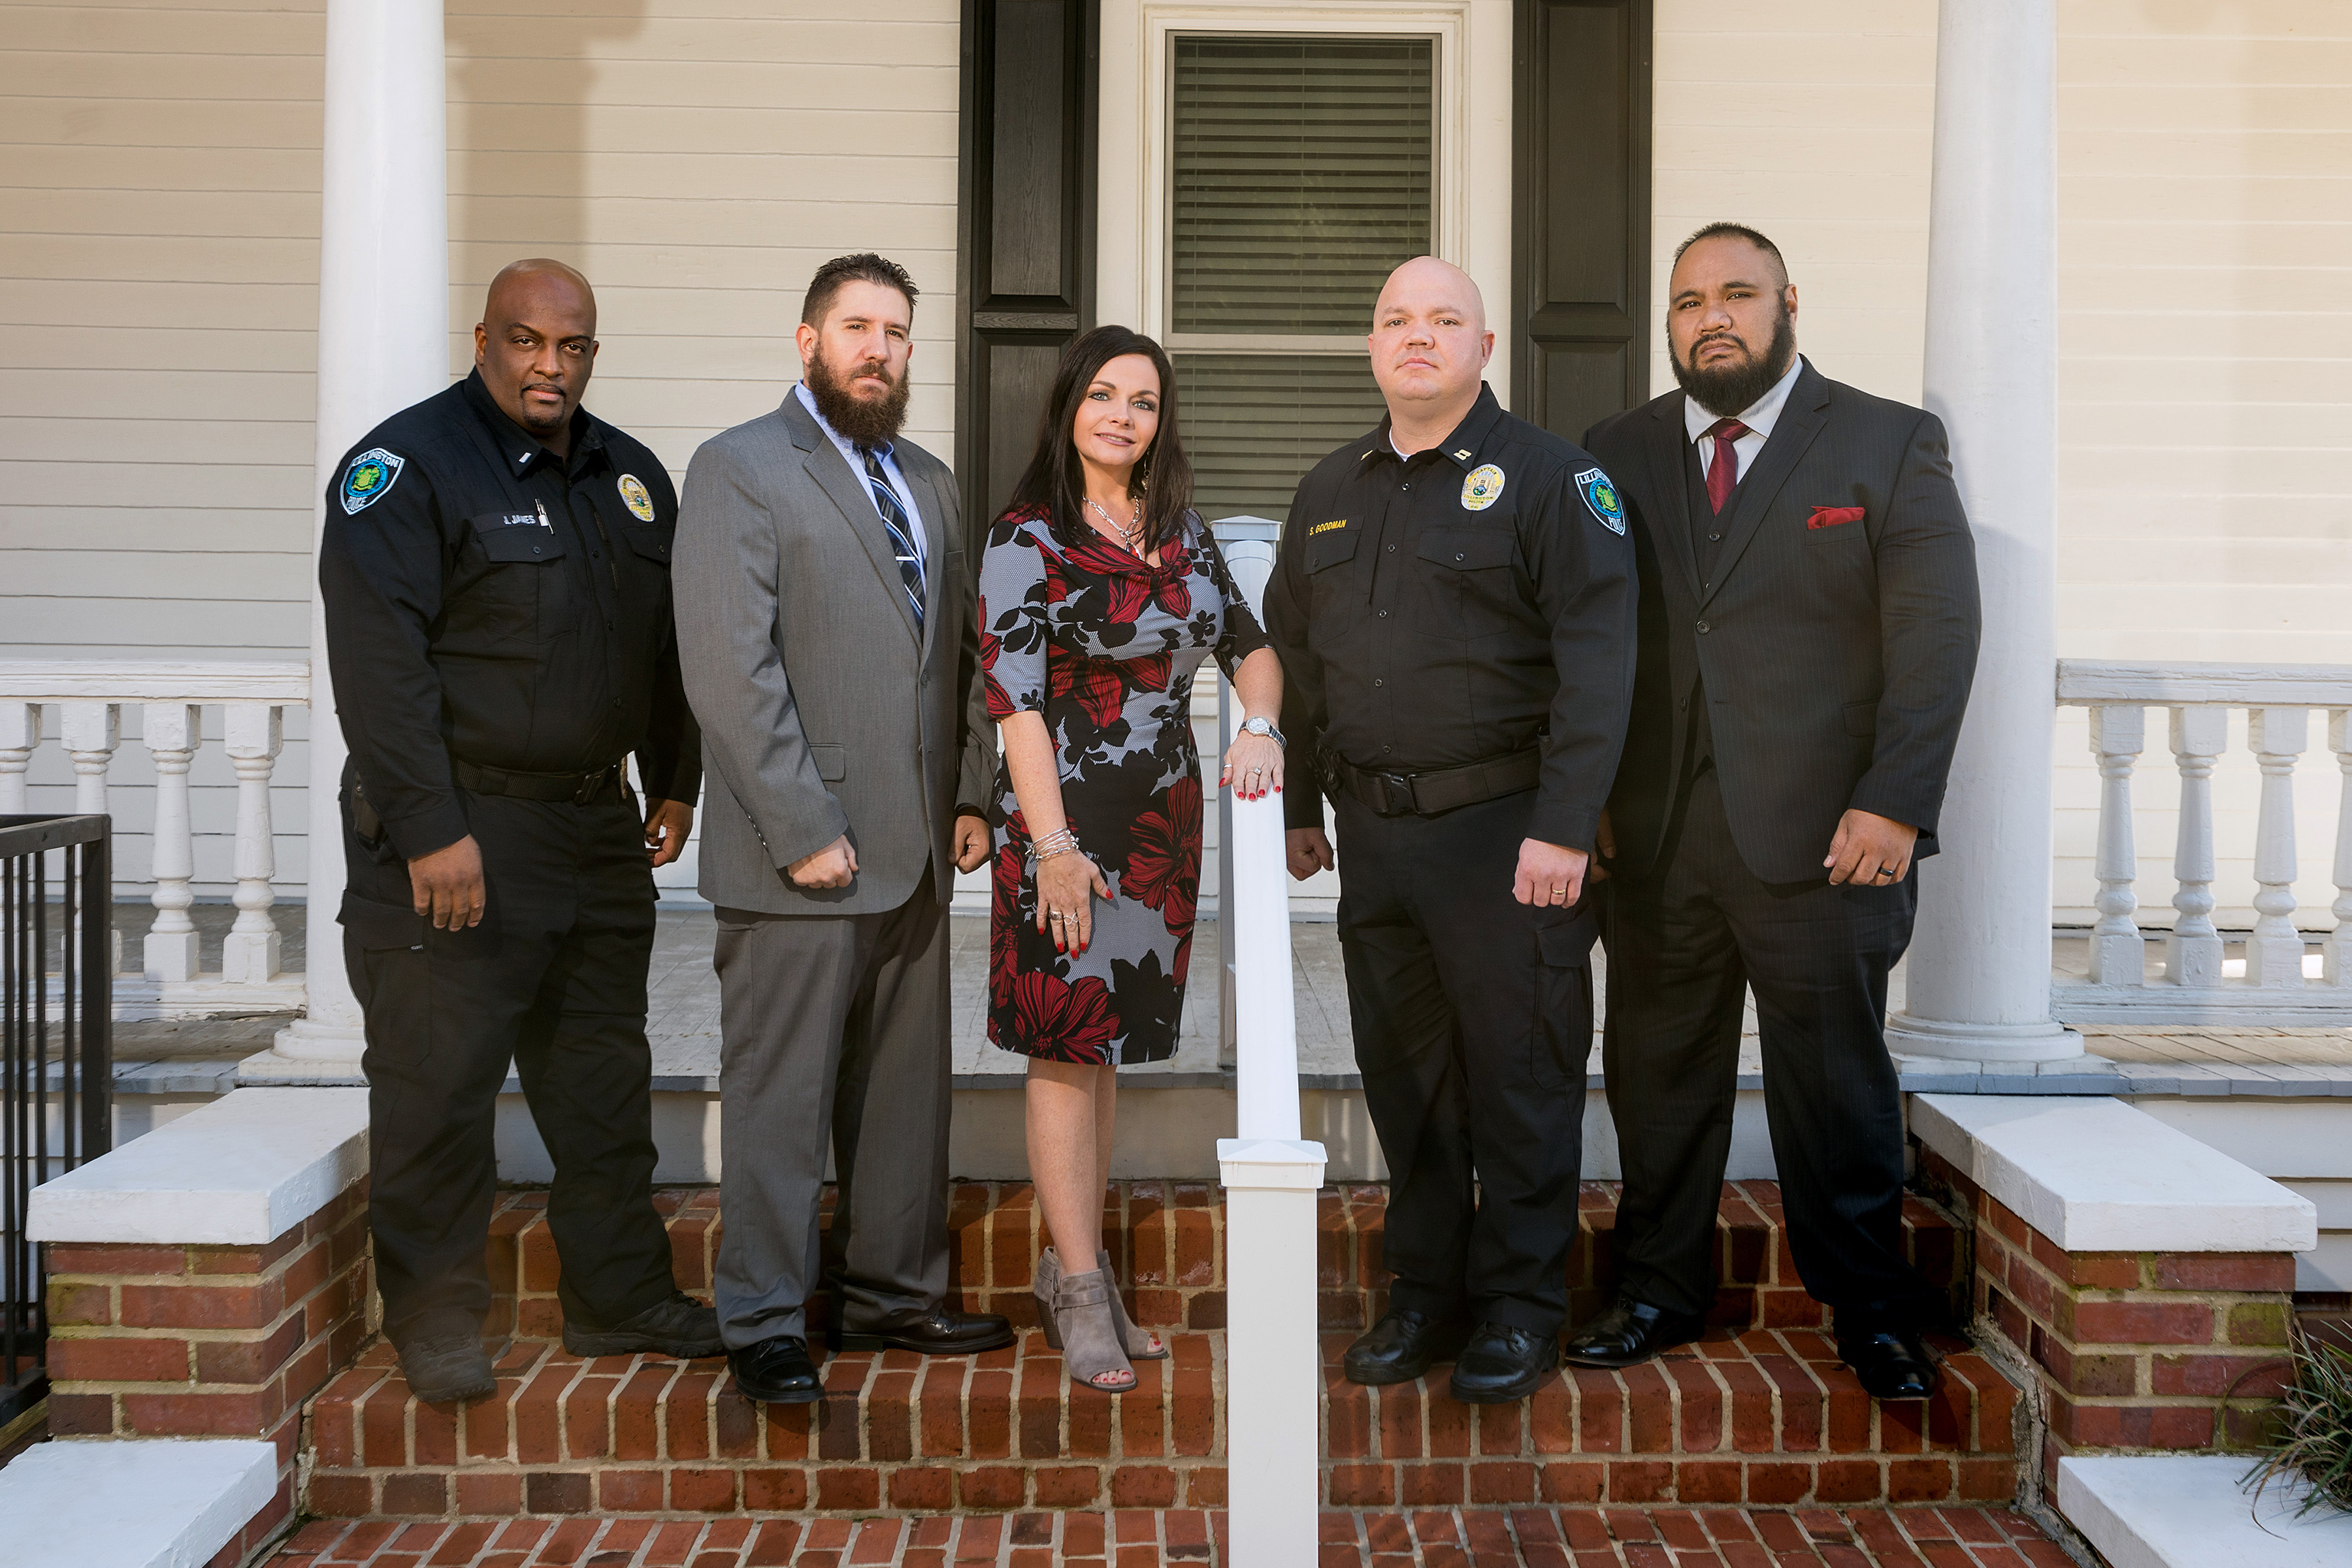 Police - Lillington, North Carolina